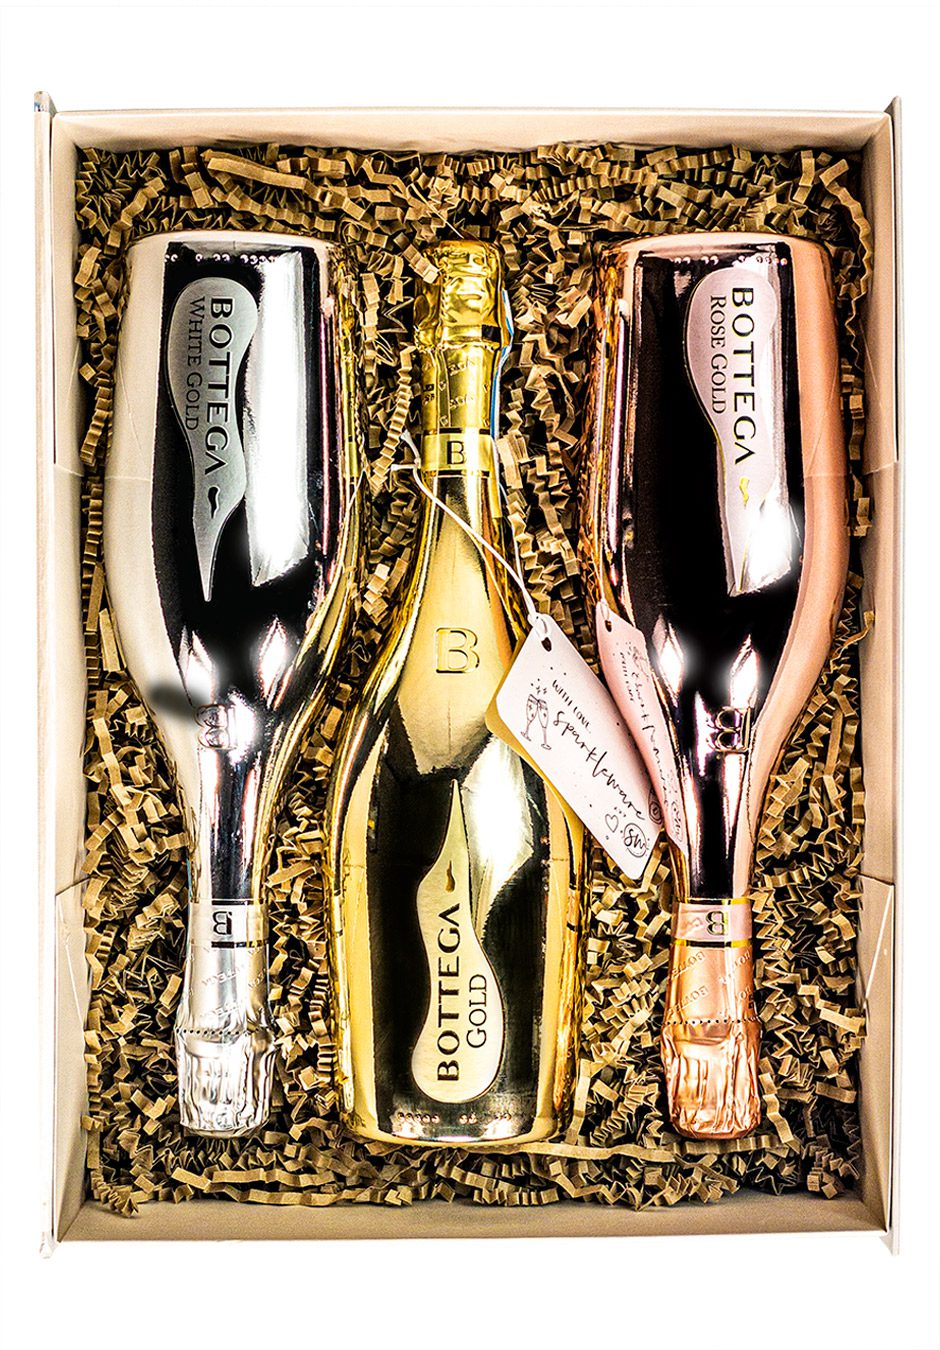 Bottega 75cl trio | Prosecco and Sparkling Wine | Sparkleware Gift Set | Keico Drinks